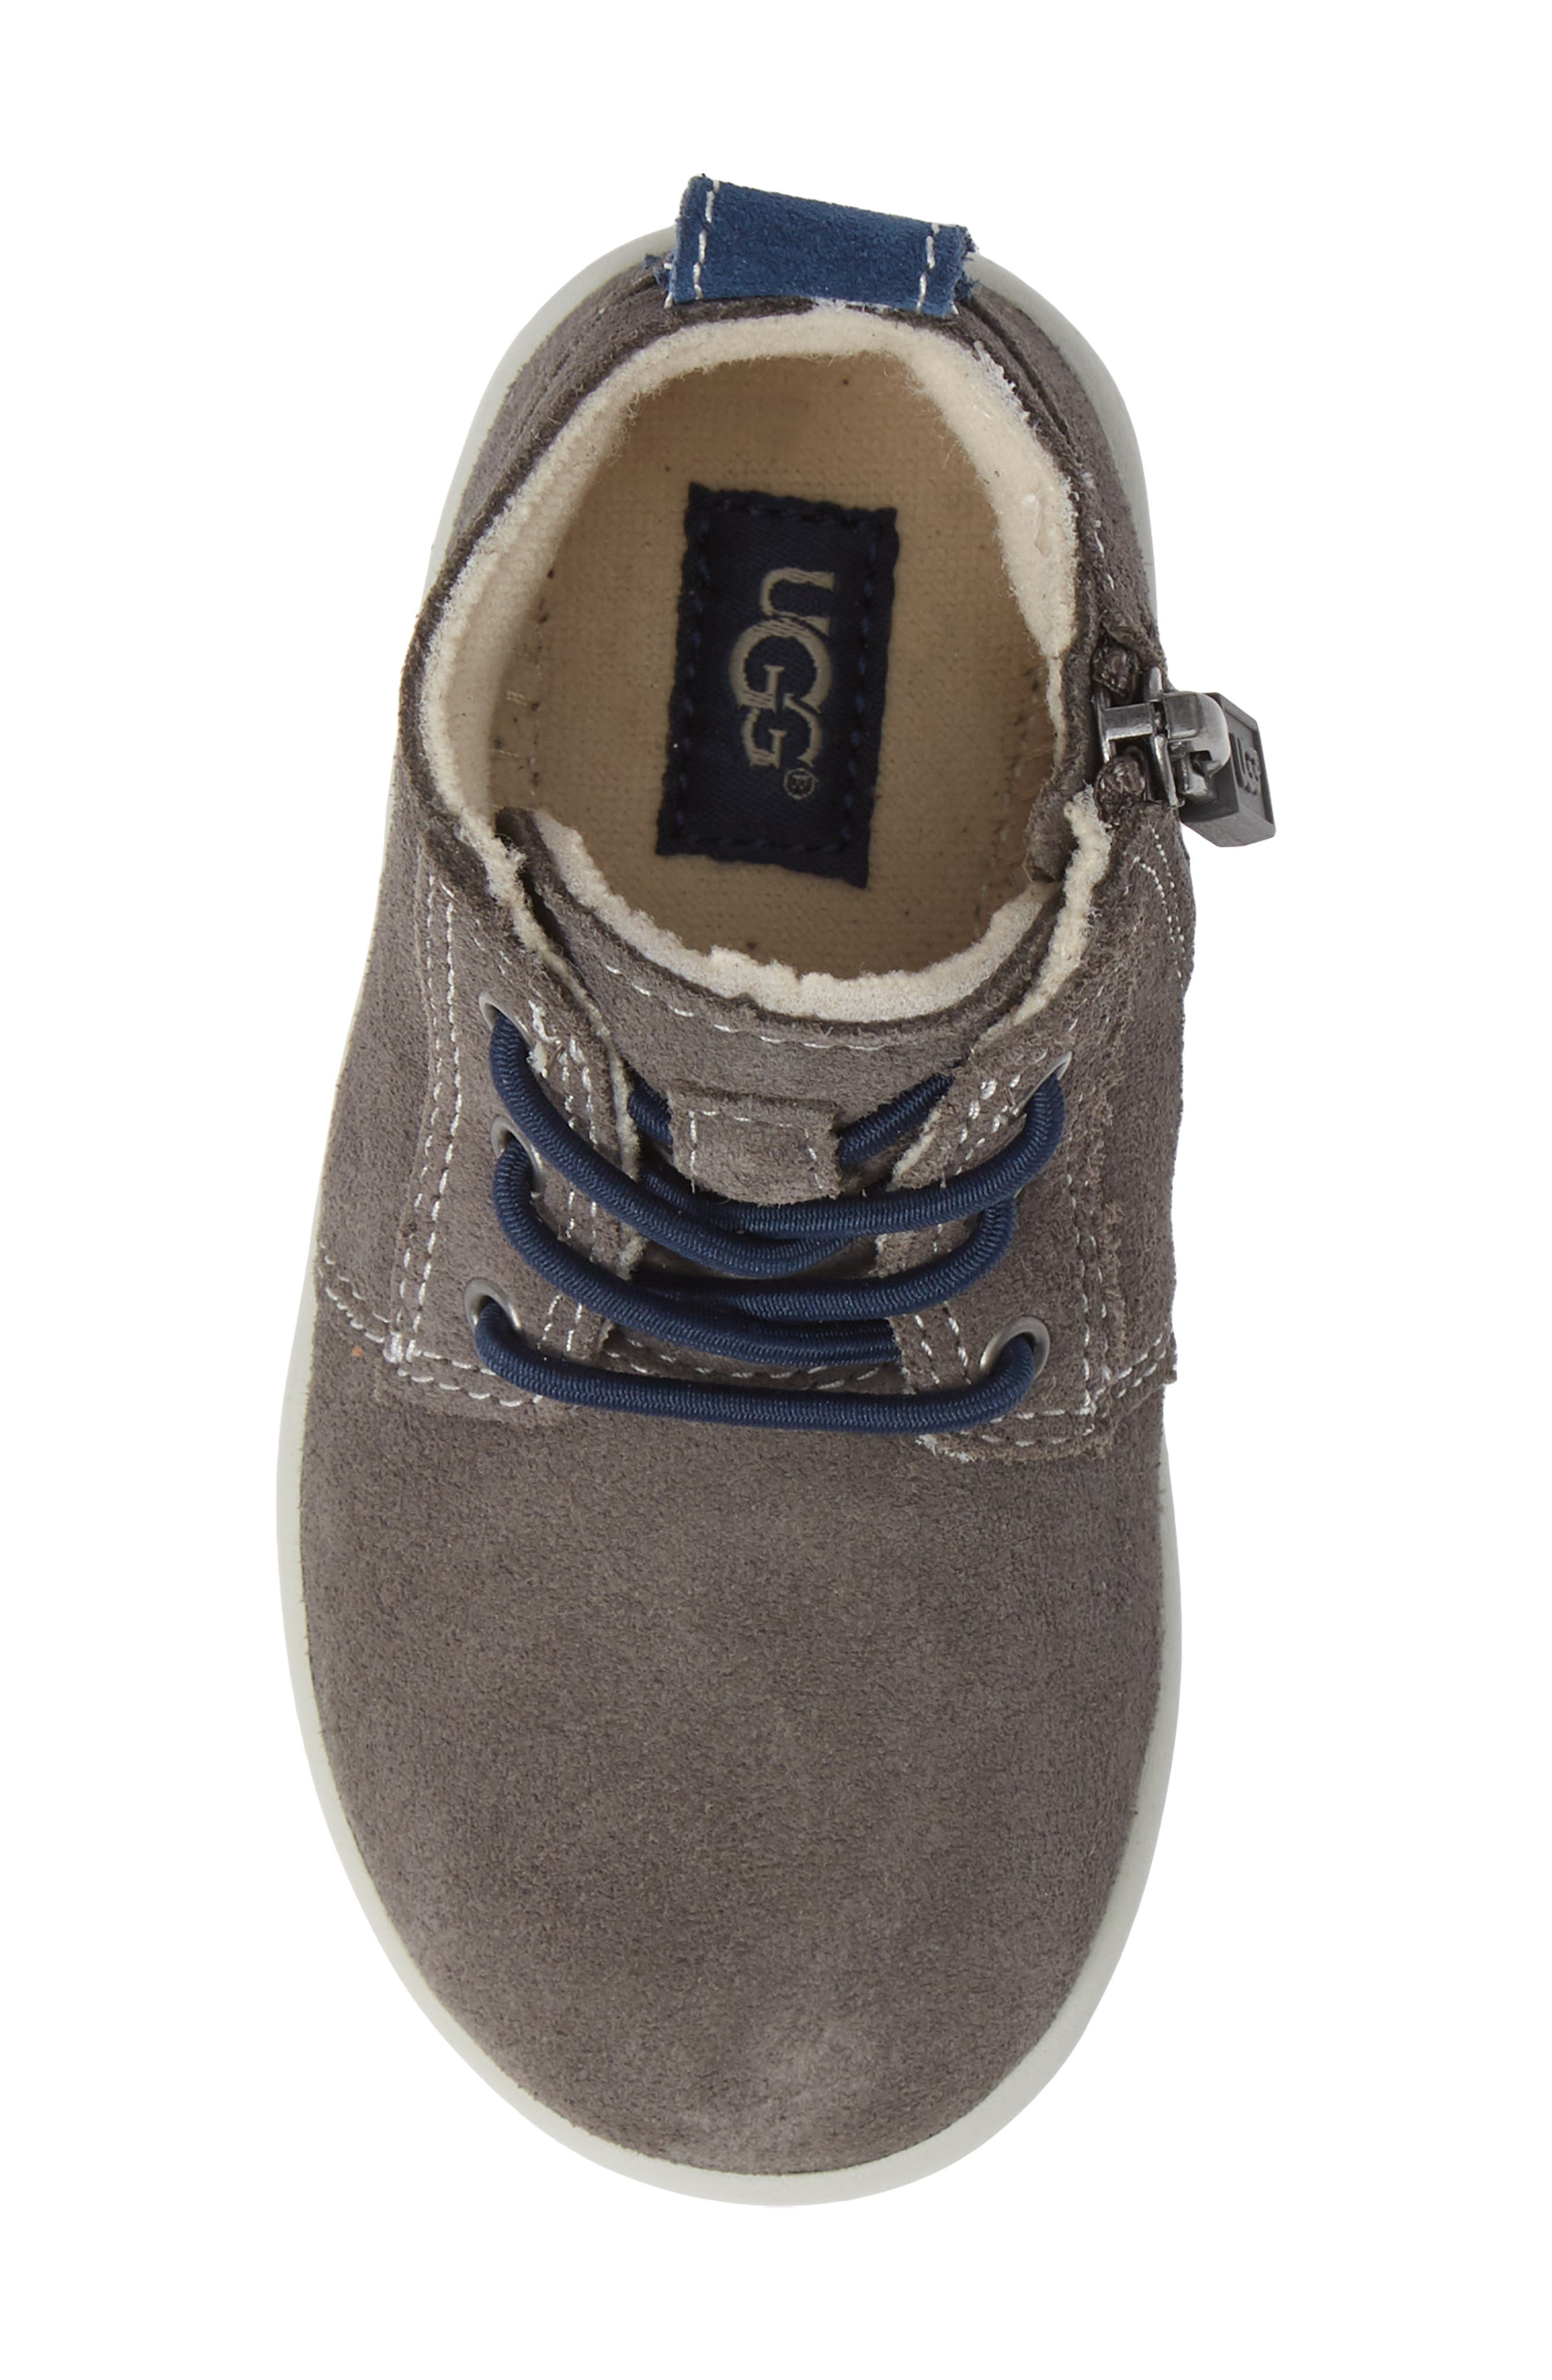 Kristjan Chukka Bootie Sneaker,                             Alternate thumbnail 3, color,                             Charcoal Grey